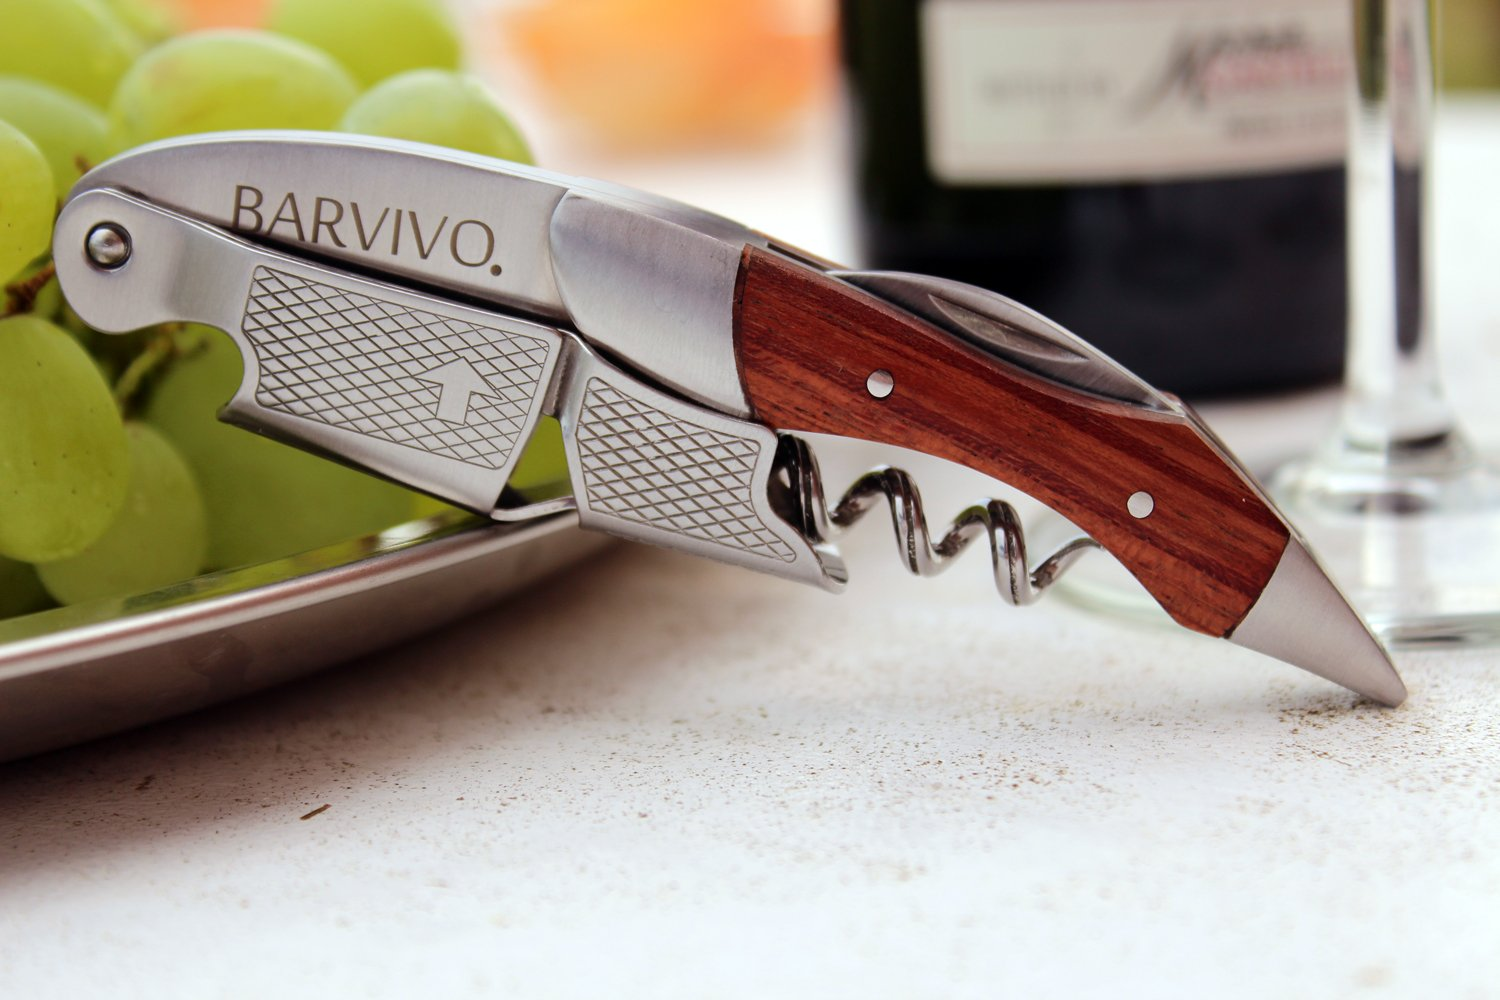 Professional Waiters Corkscrew by Barvivo - This Wine Opener is Used to Open Beer and Wine Bottles by Waiters, Sommelier and Bartenders Around the World. Made of Stainless Steel and Natural Rosewood. by Barvivo (Image #6)